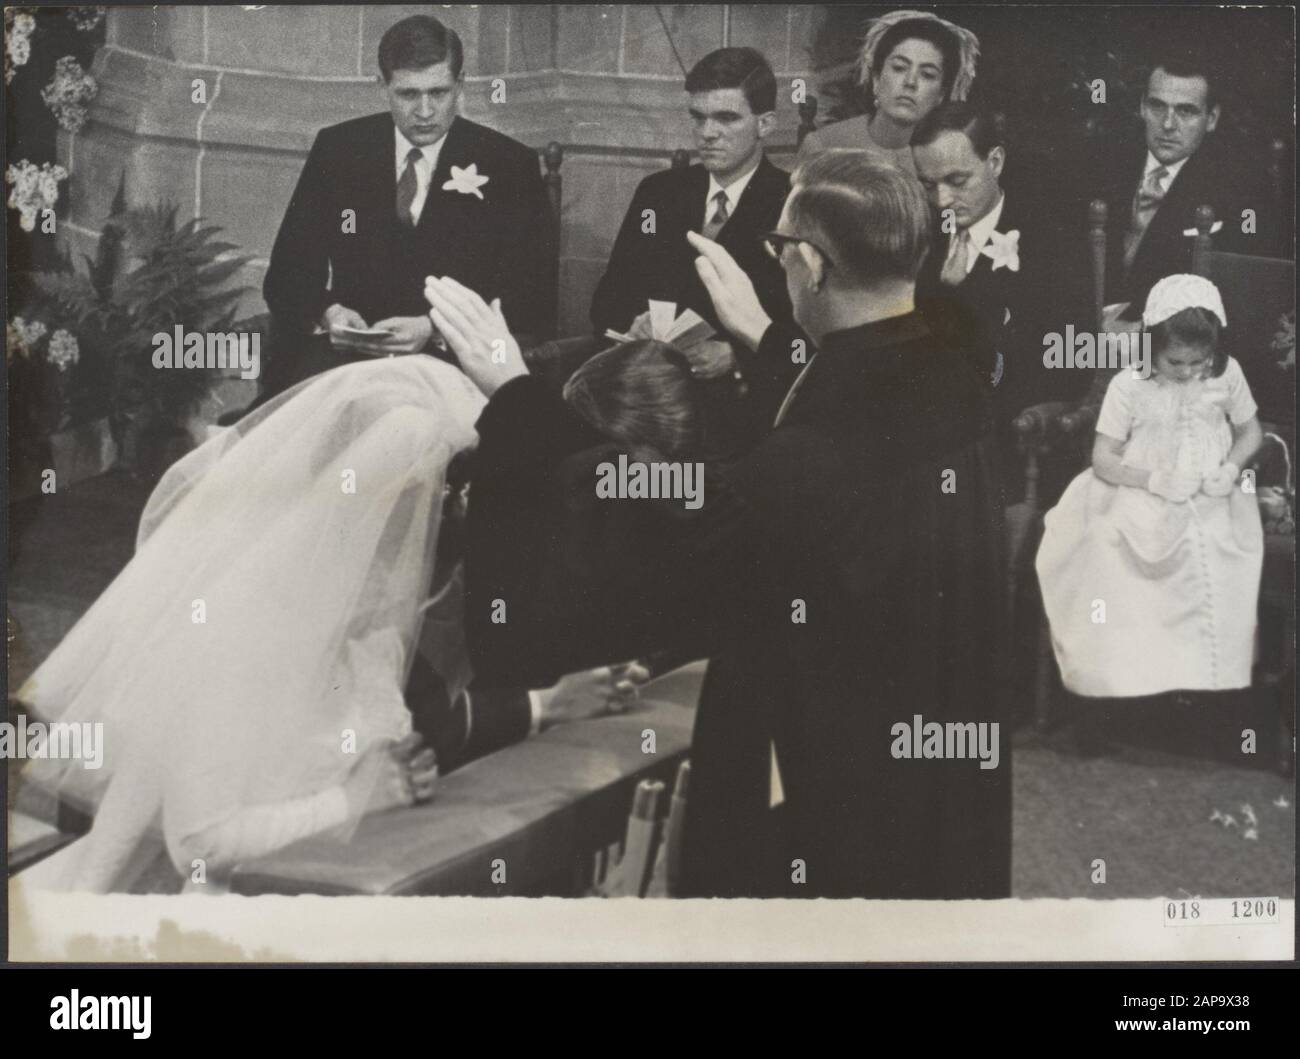 The blessing of marriage by prof. dr. H. Berkhof Date: January 10, 1967 Location: The Hague, South-Holland Keywords: marriages, churches, royal house, princesses, town halls Personal name: Berkhof H., Margriet, princess, Vollenhoven, Pieter van Stock Photo